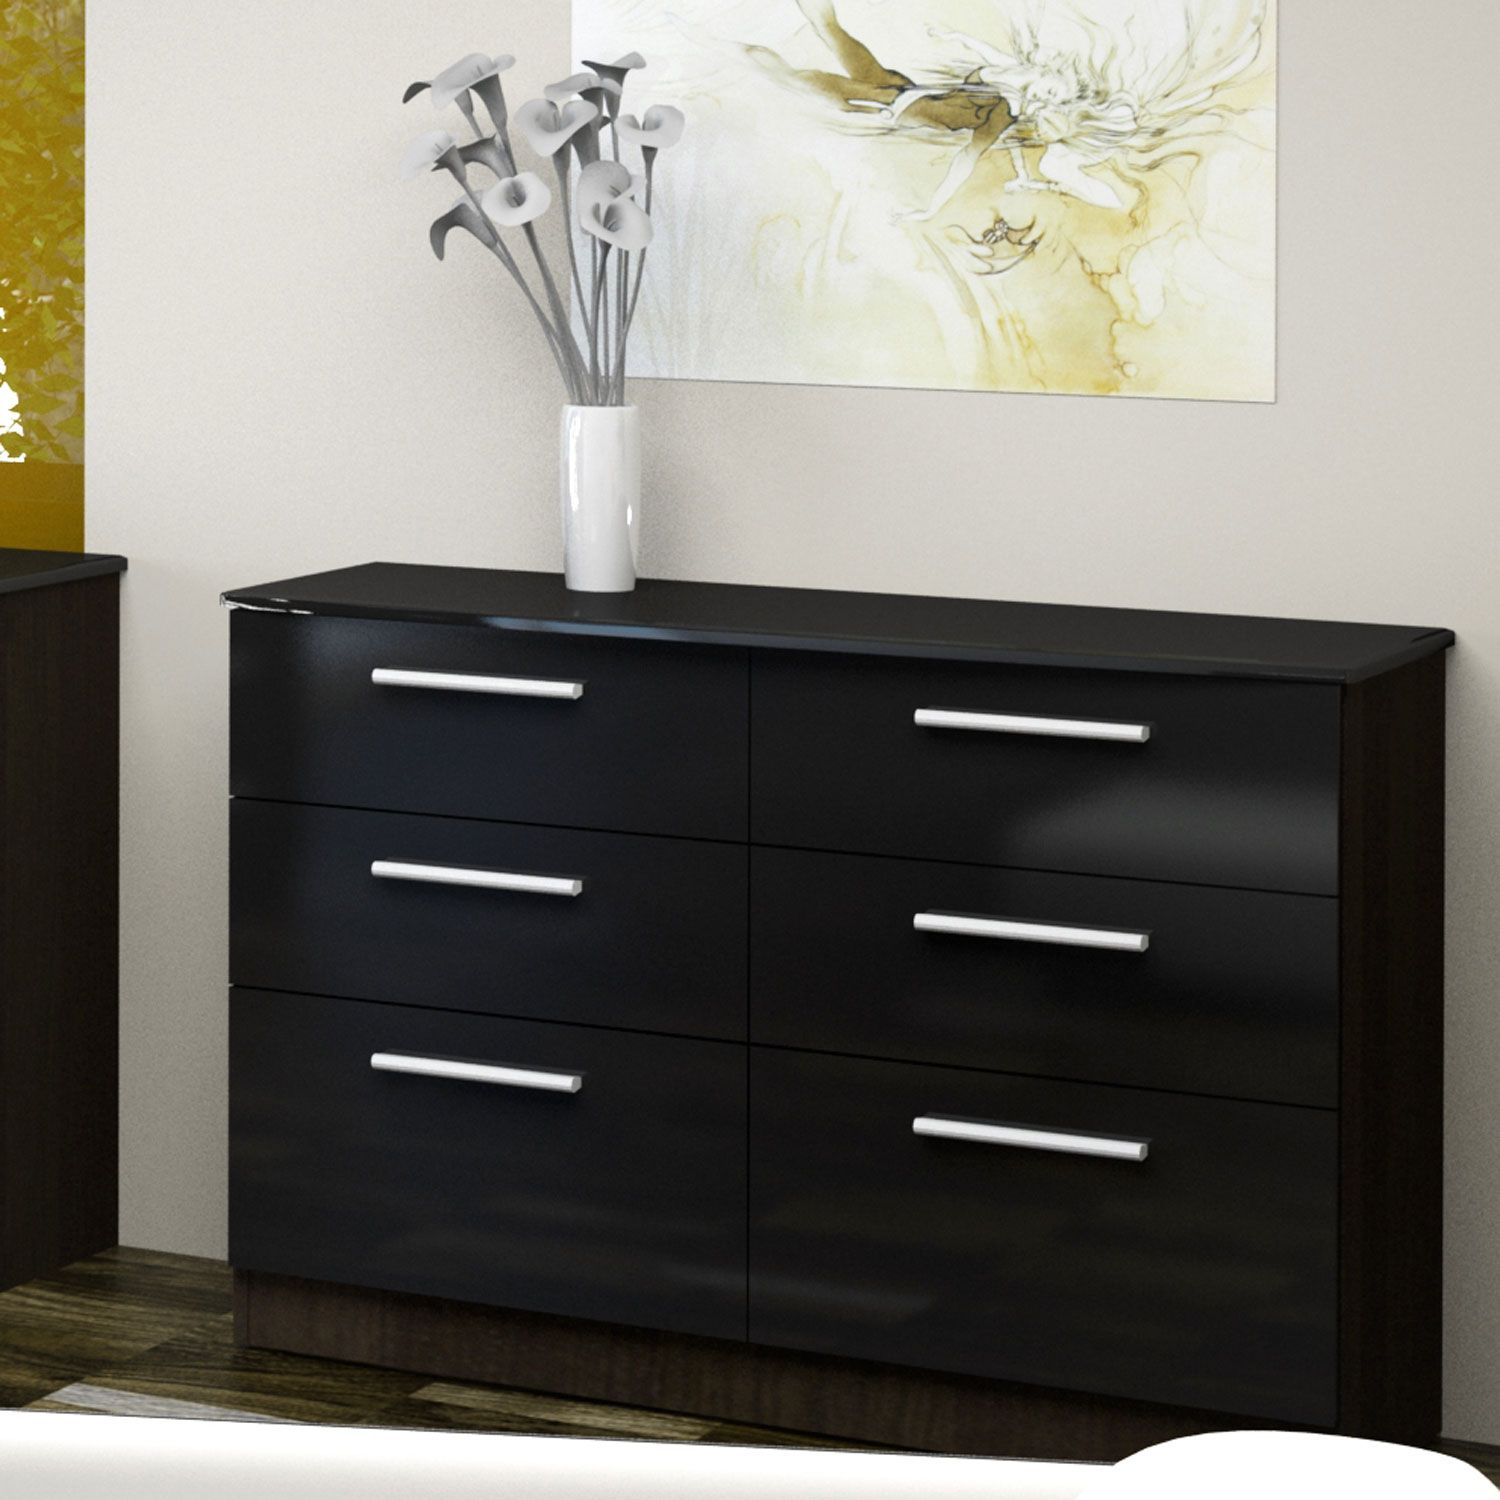 Buy The Chester High Gloss Black And Black Ash 6 Drawer Chest Furniture Bedroom